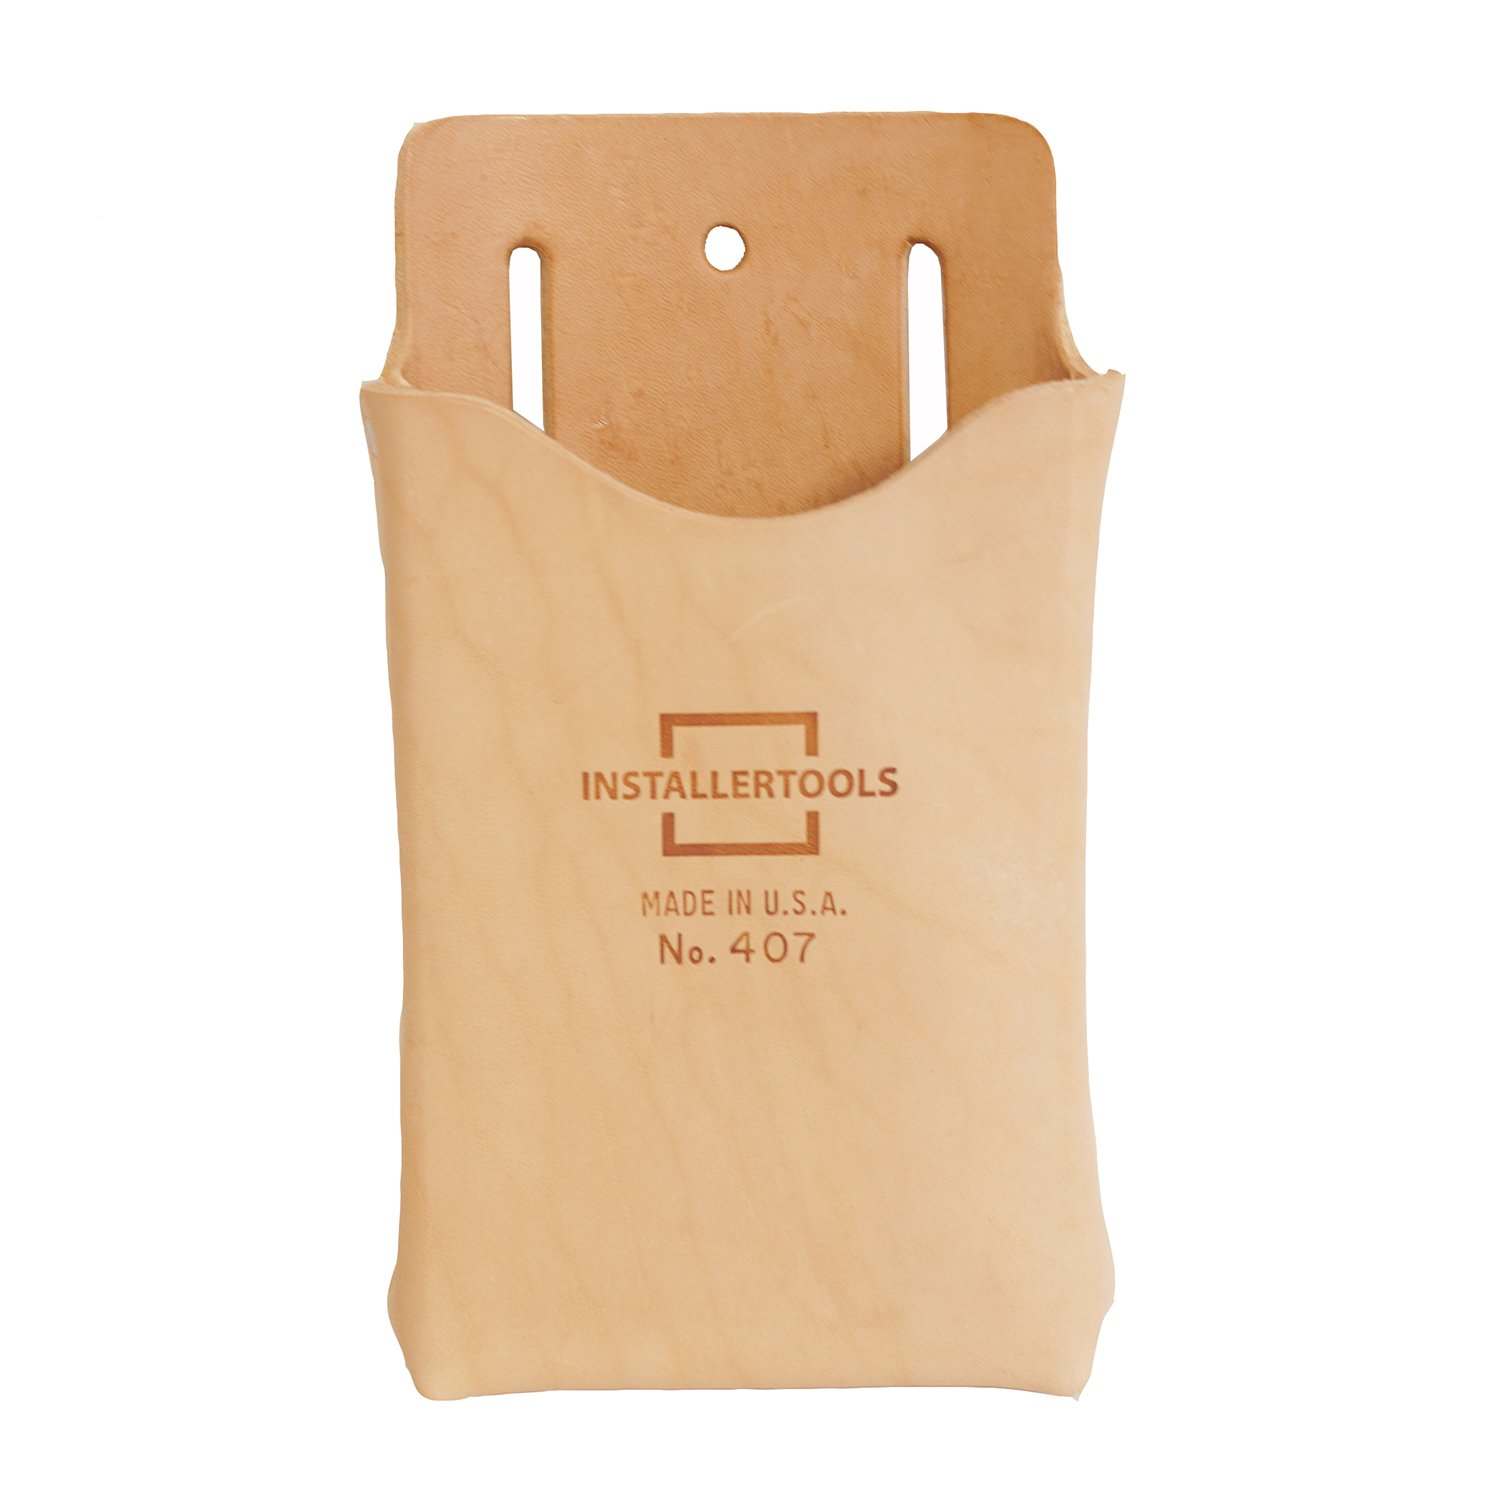 Installertools Leather Single Pocket Box Style Tool Pouch by Installertools